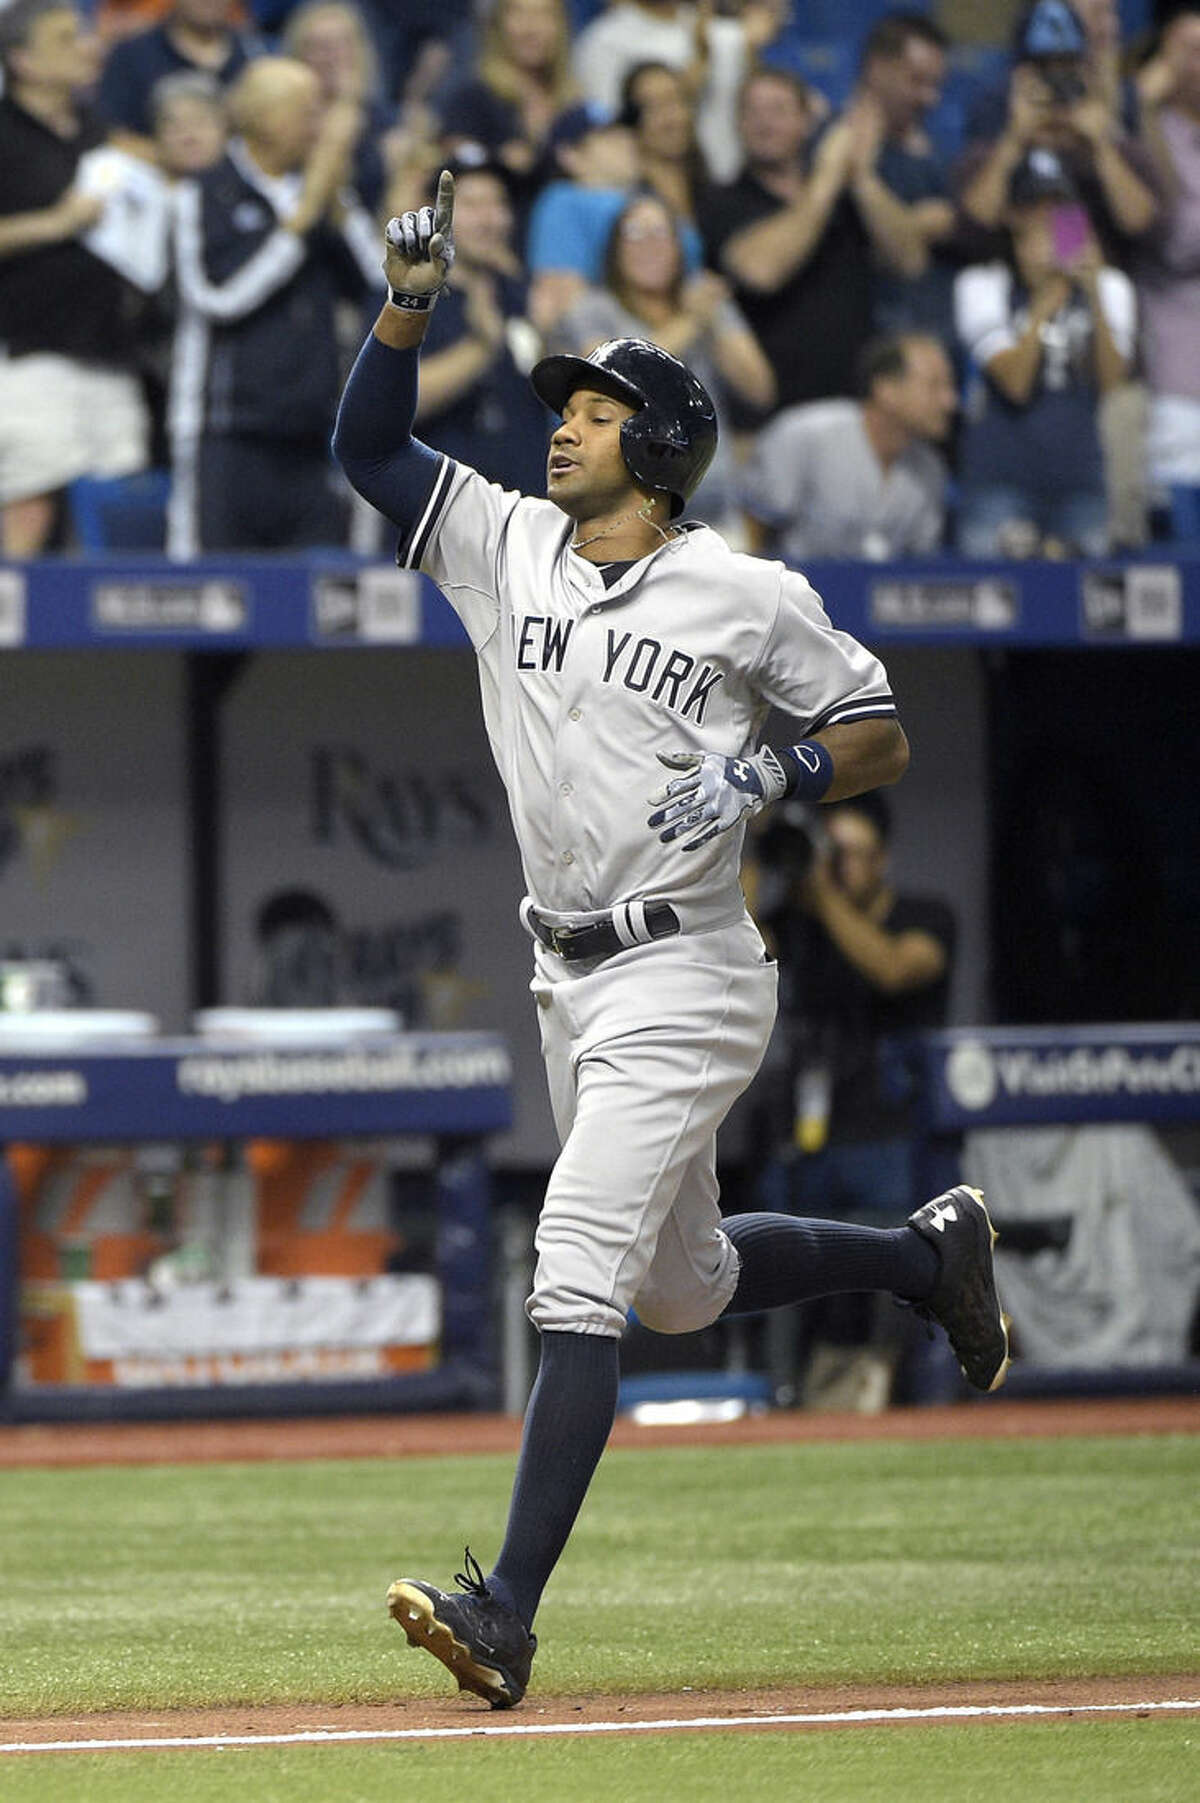 New York Yankees' Chris Young points upward as he heads to home plate after hitting a grand slam during the seventh inning of a baseball game against the Tampa Bay Rays in St. Petersburg, Fla., Saturday, April 18, 2015.(AP Photo/Phelan M. Ebenhack)